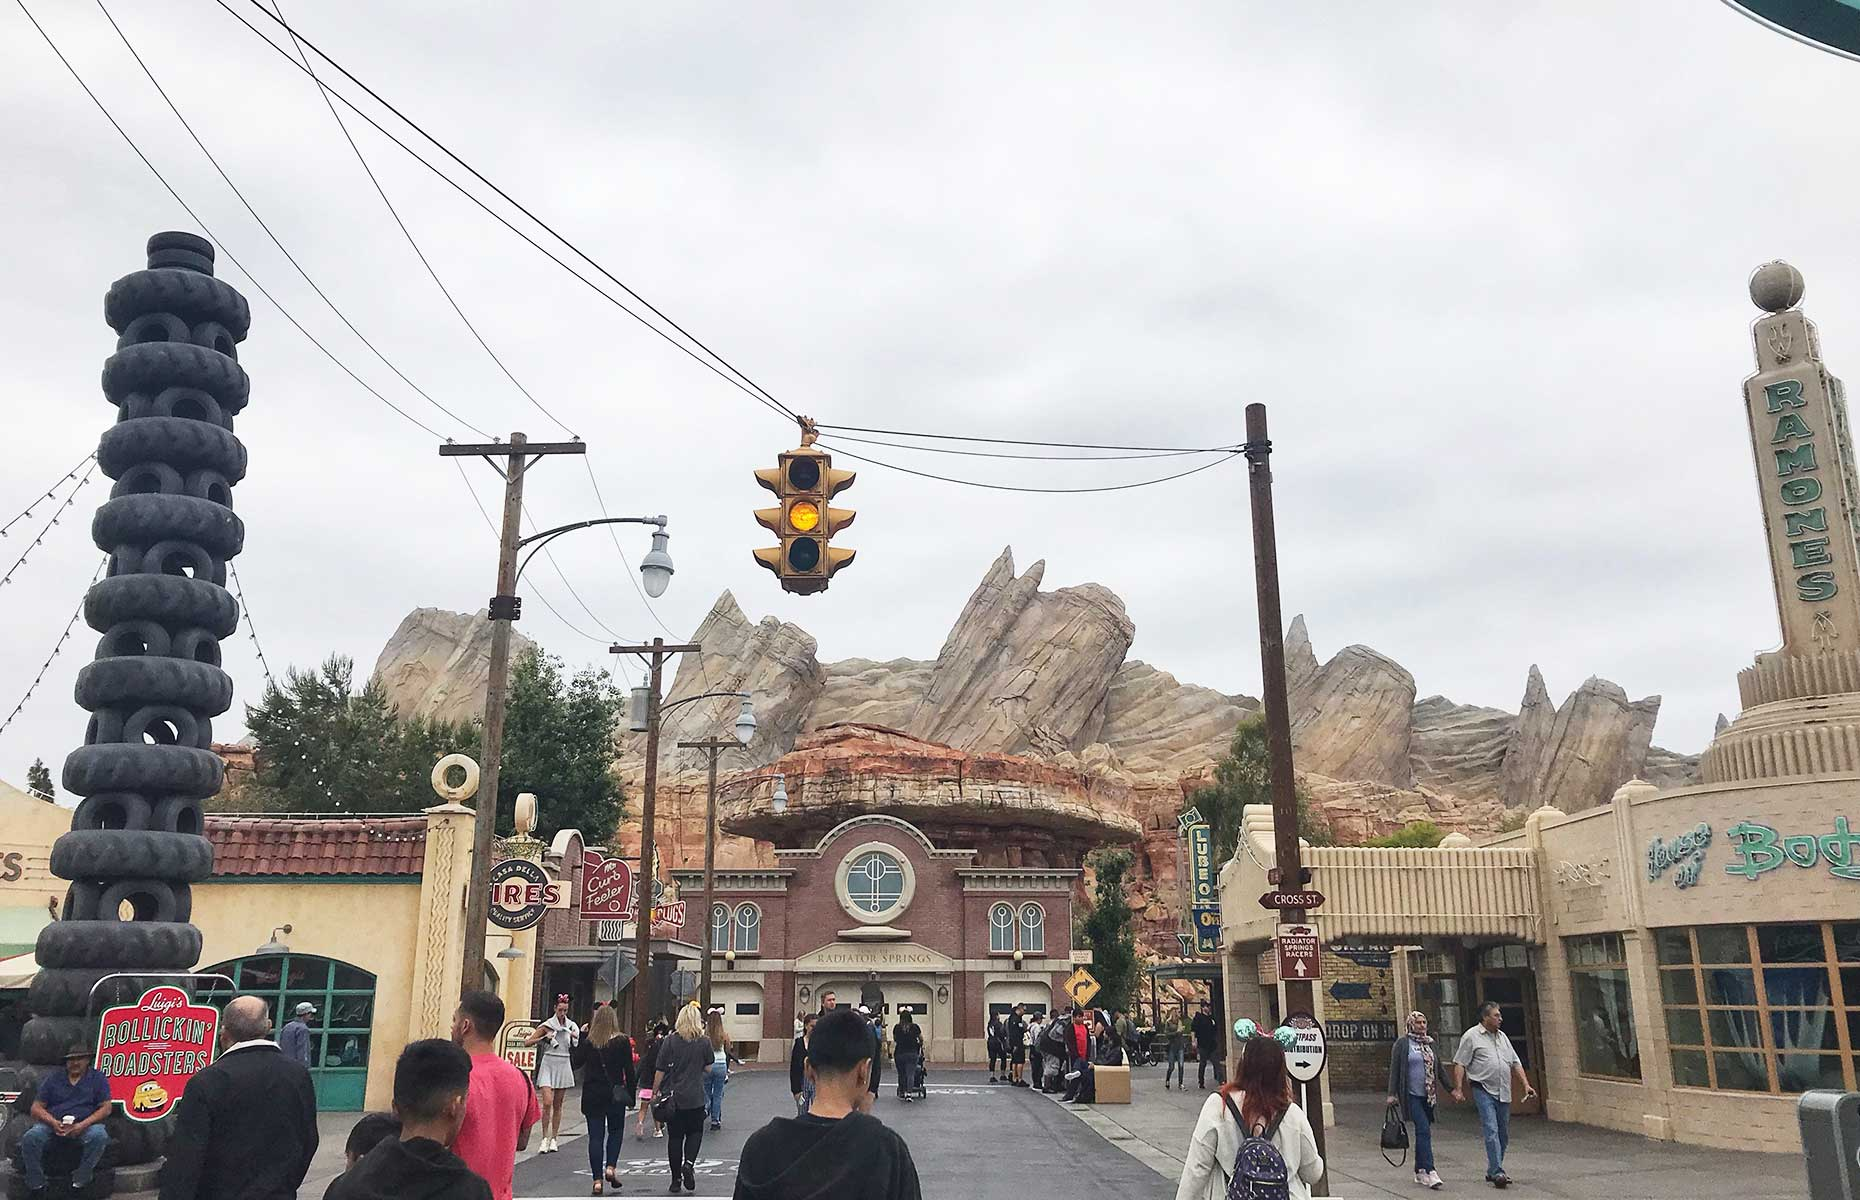 Cars Land at Disney's California Adventure Park